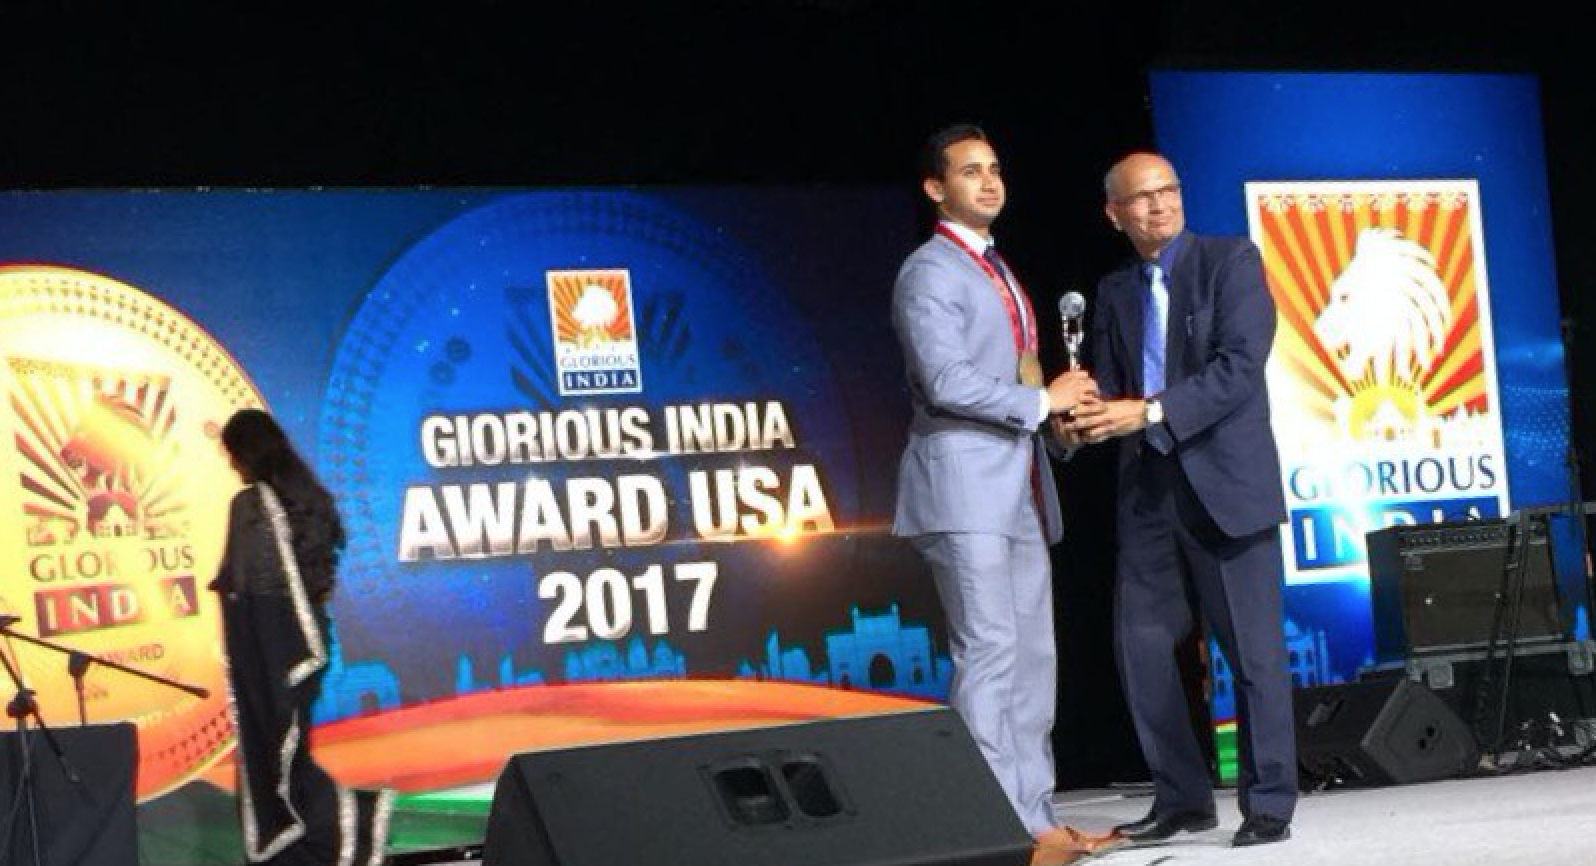 Mr.India/USA award to help promote trade between USA and India.